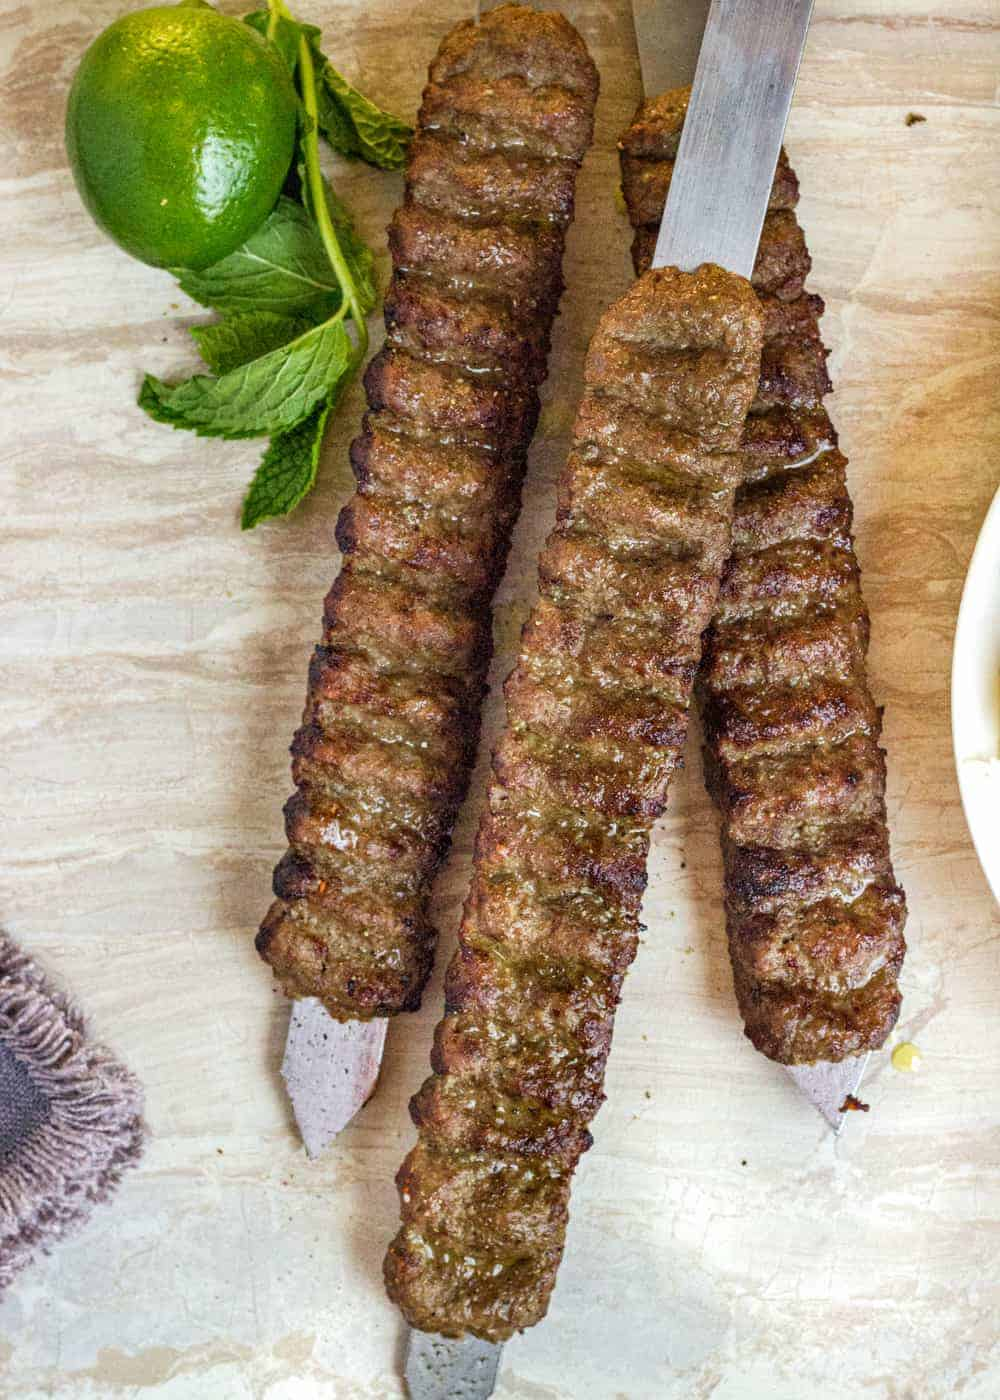 meat kabobs on flat skewers next to fresh mint leaves and a whole lime